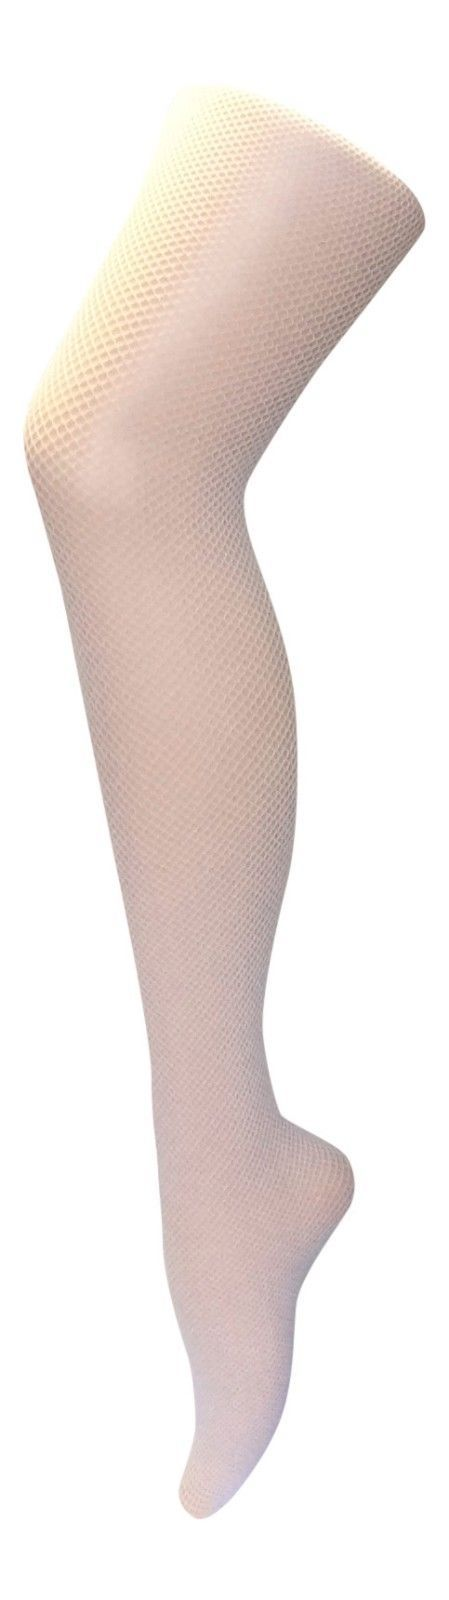 Womens Sexy Bright Dance Neon Colored Fishnet Tights in Black White Pink Orange